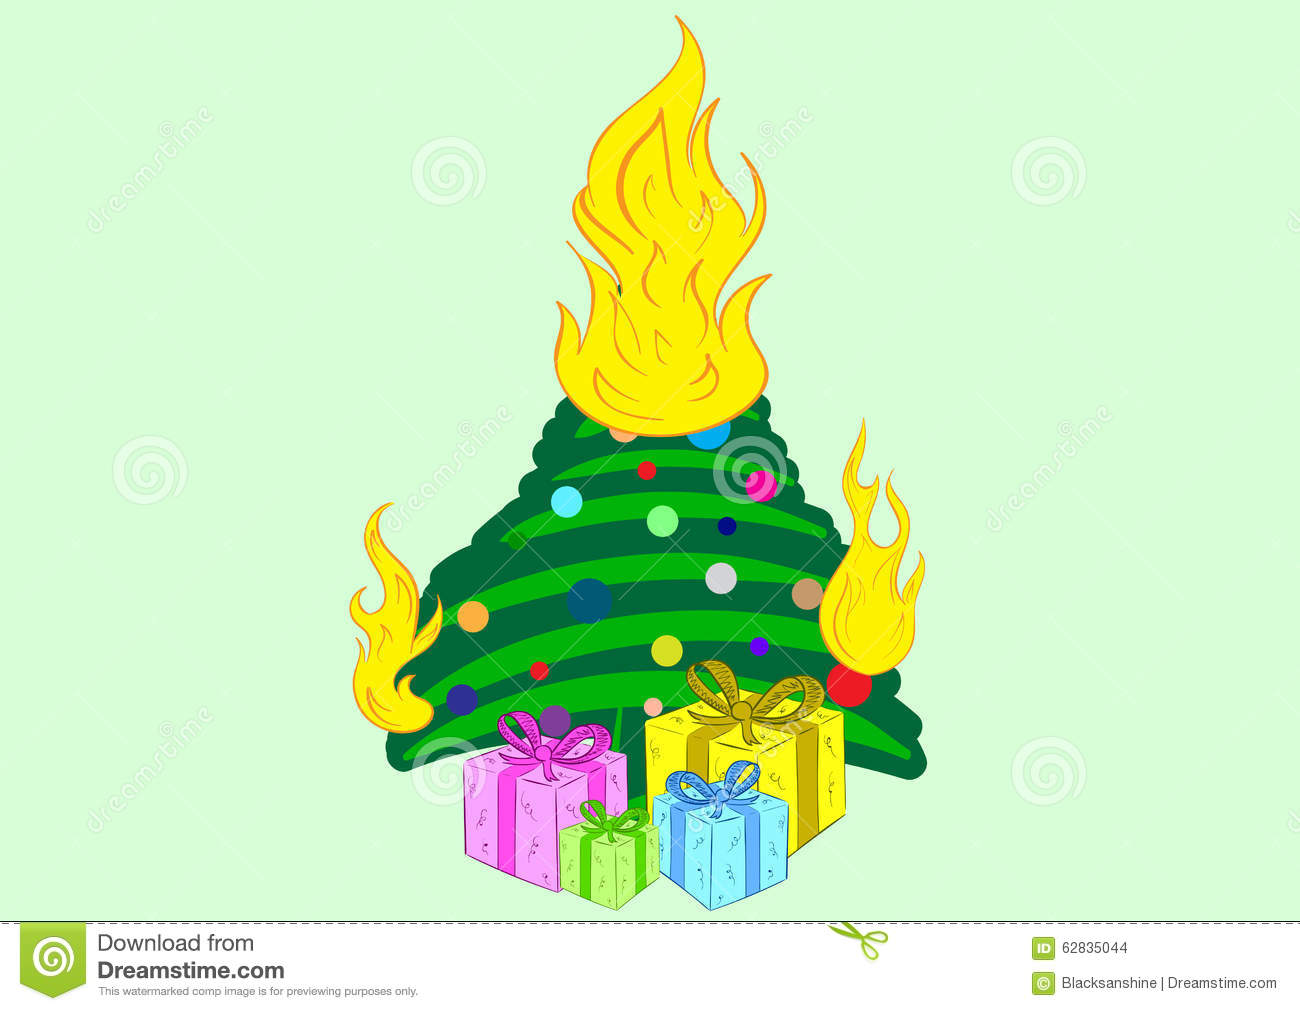 download the burning christmas tree stock vector illustration of fire 62835044